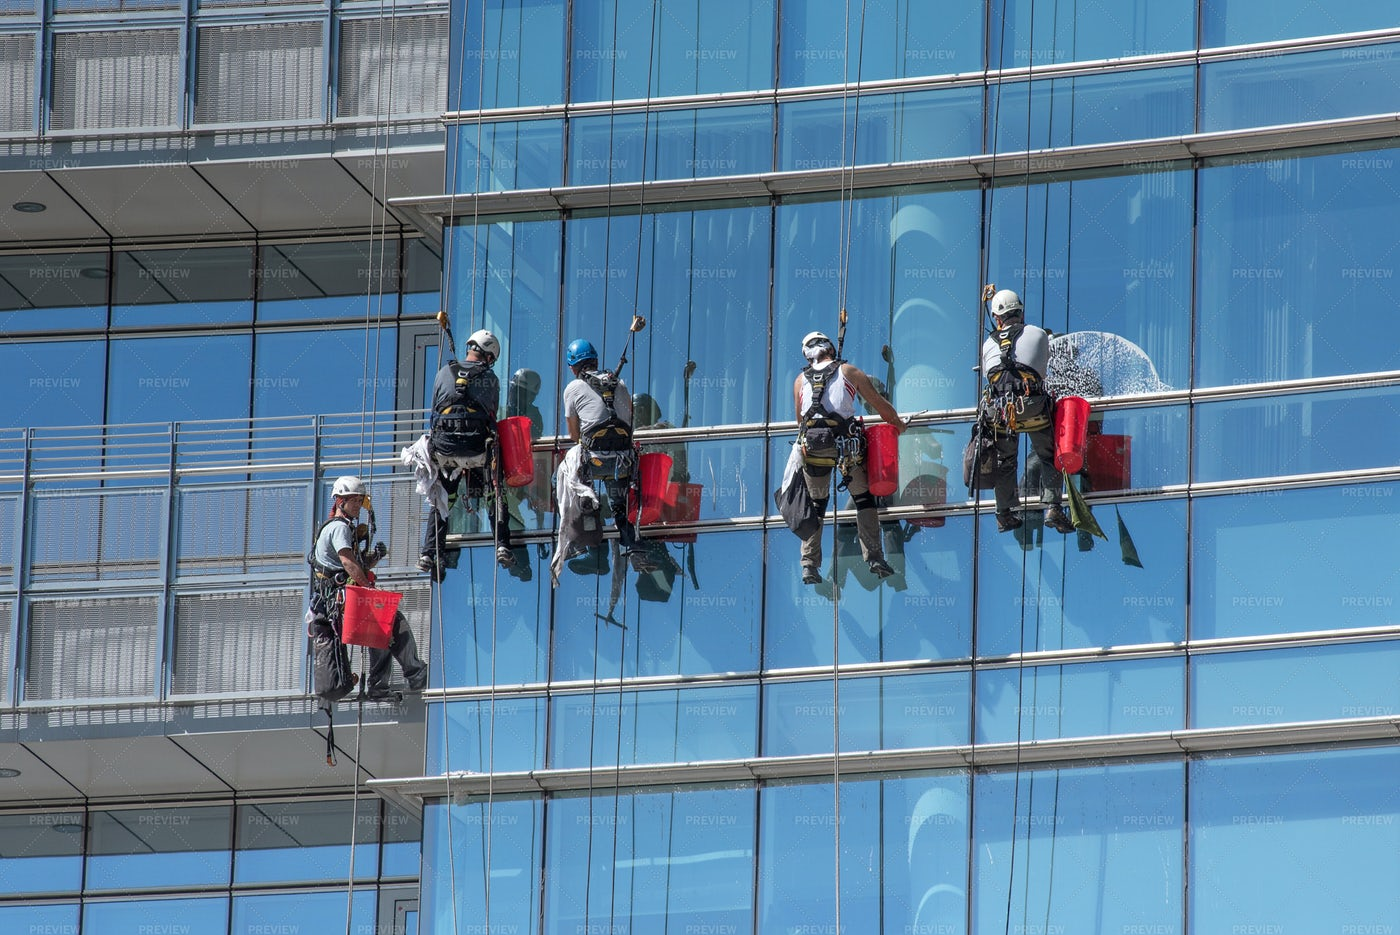 Window Cleaners On Cables: Stock Photos